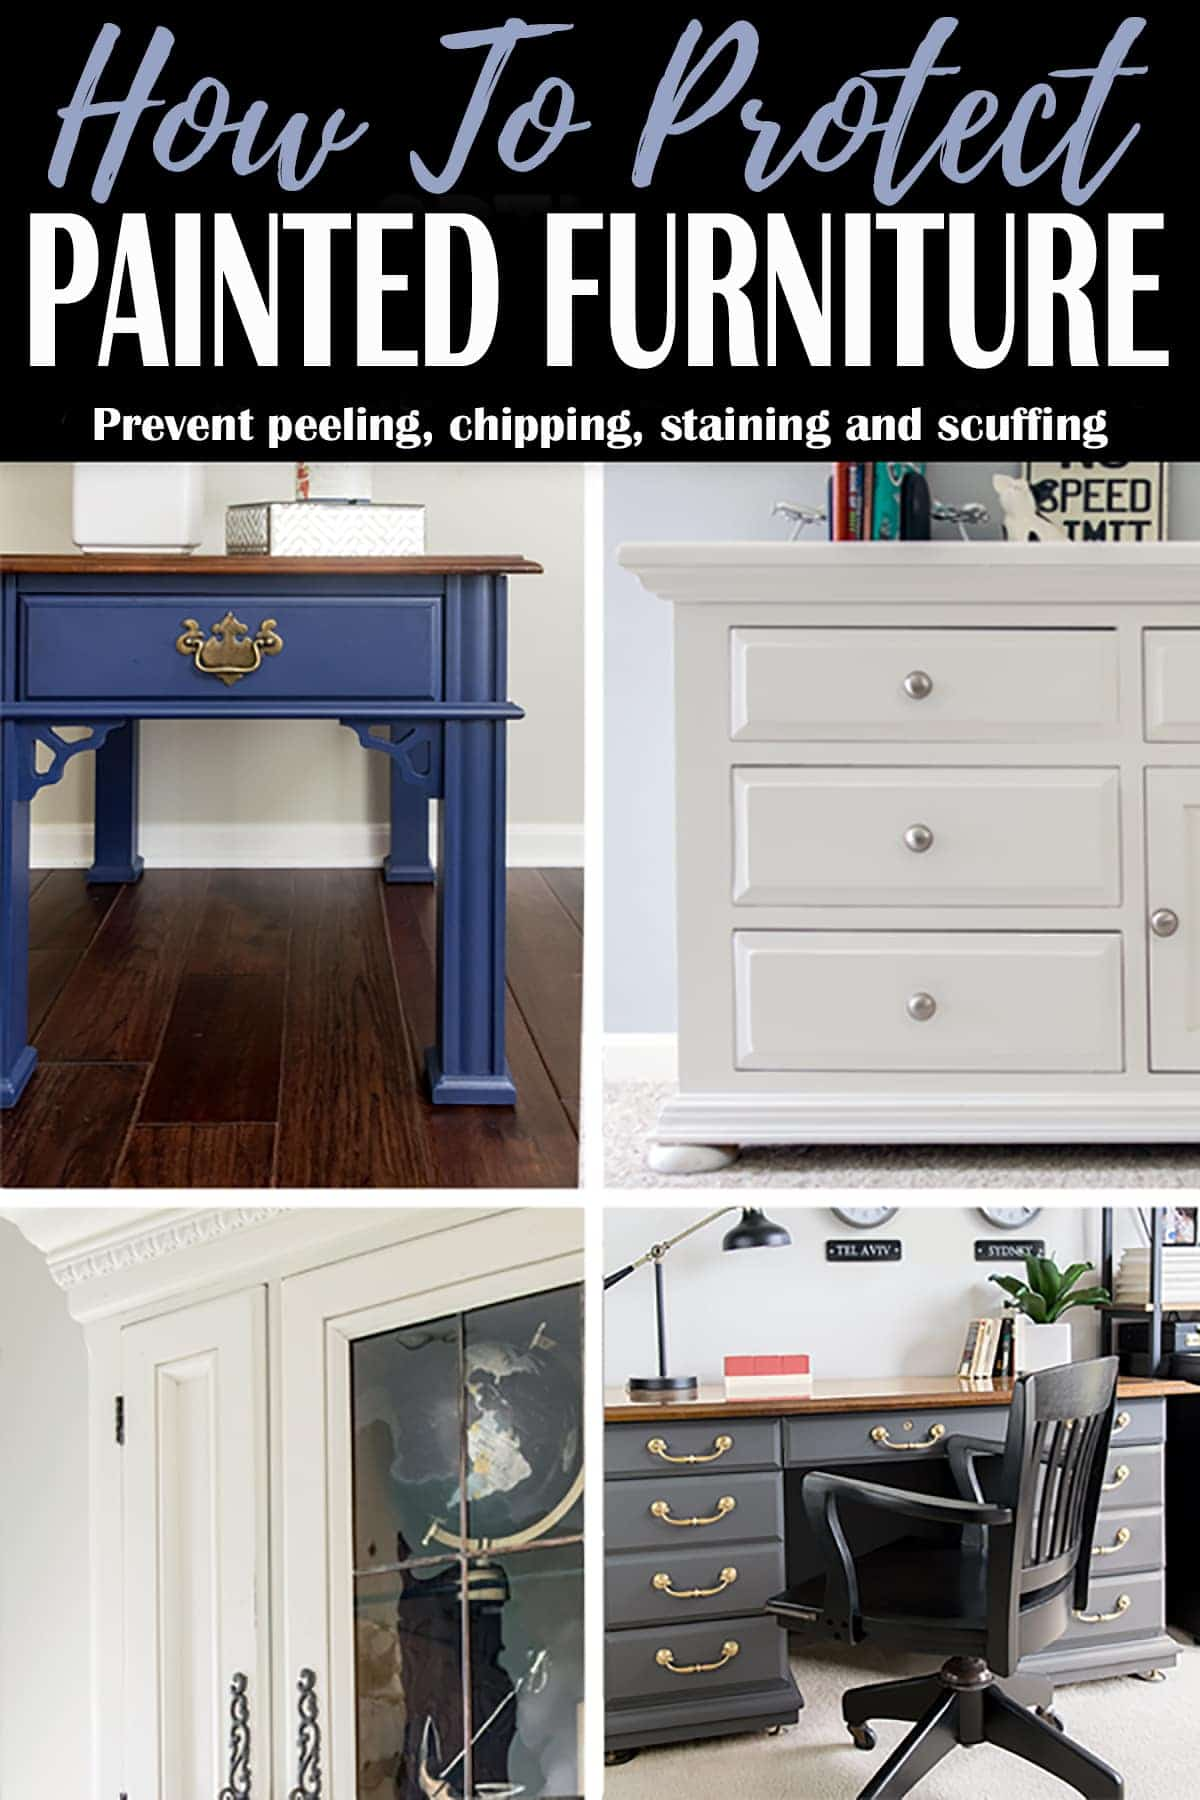 Various durable topcoat paint options for protecting DIY furniture projects